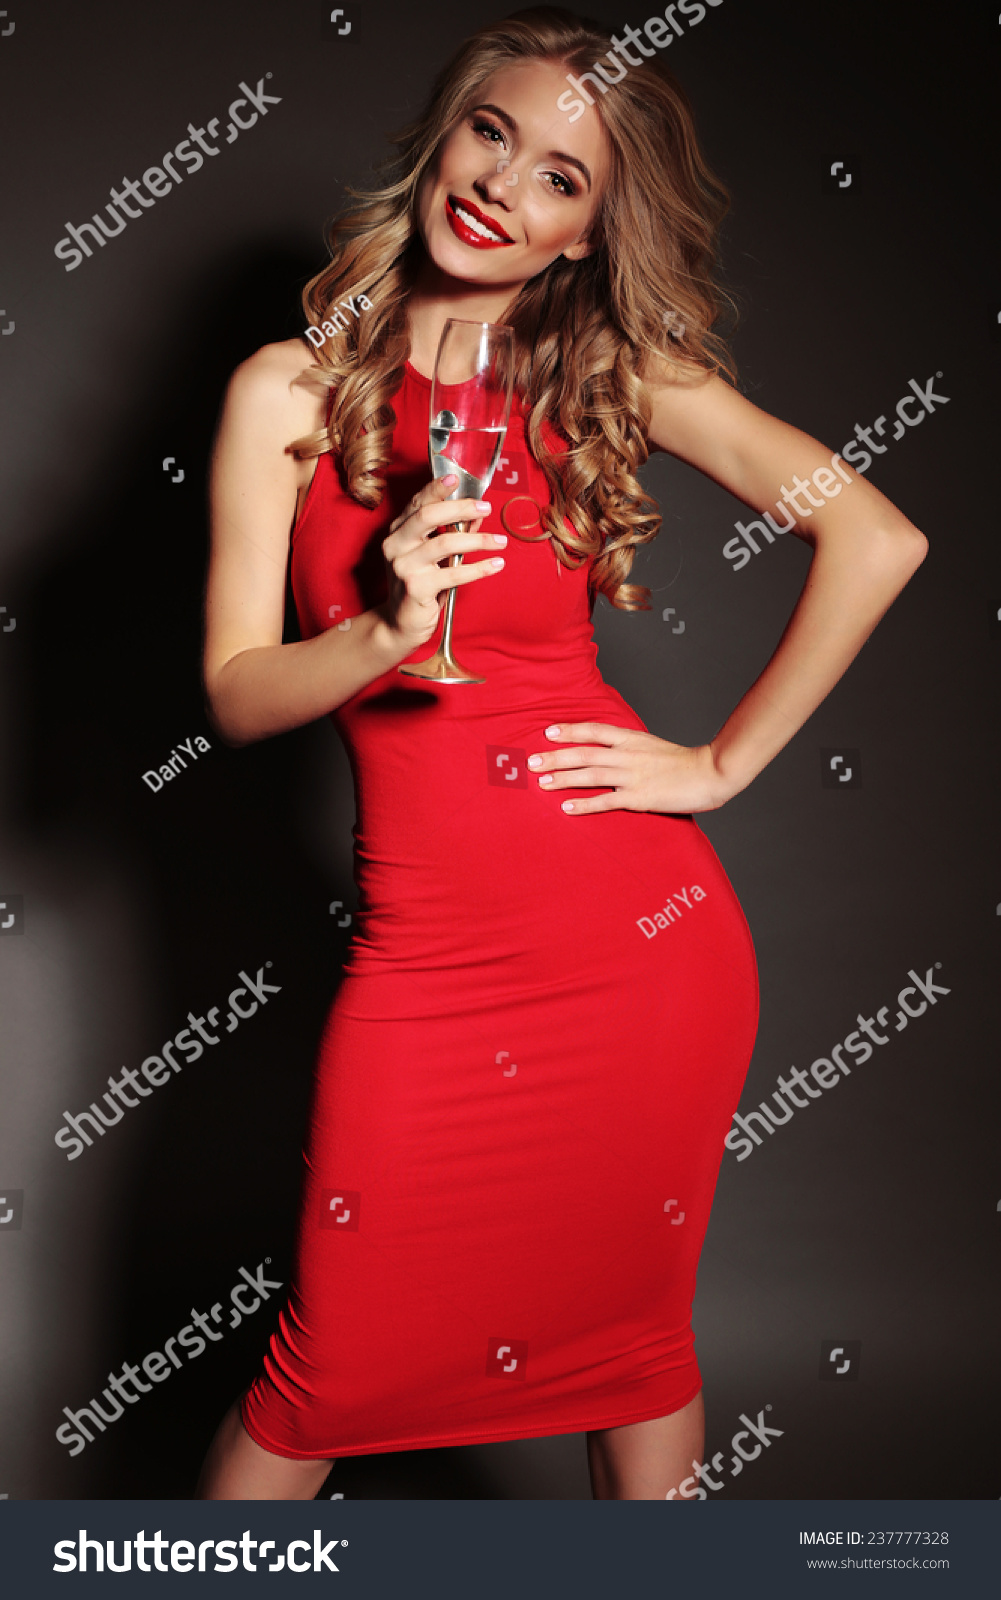 Festive Photo Of Chic Sexy Lady In Red Dress With Red Lips And Blond Beautiful Curly